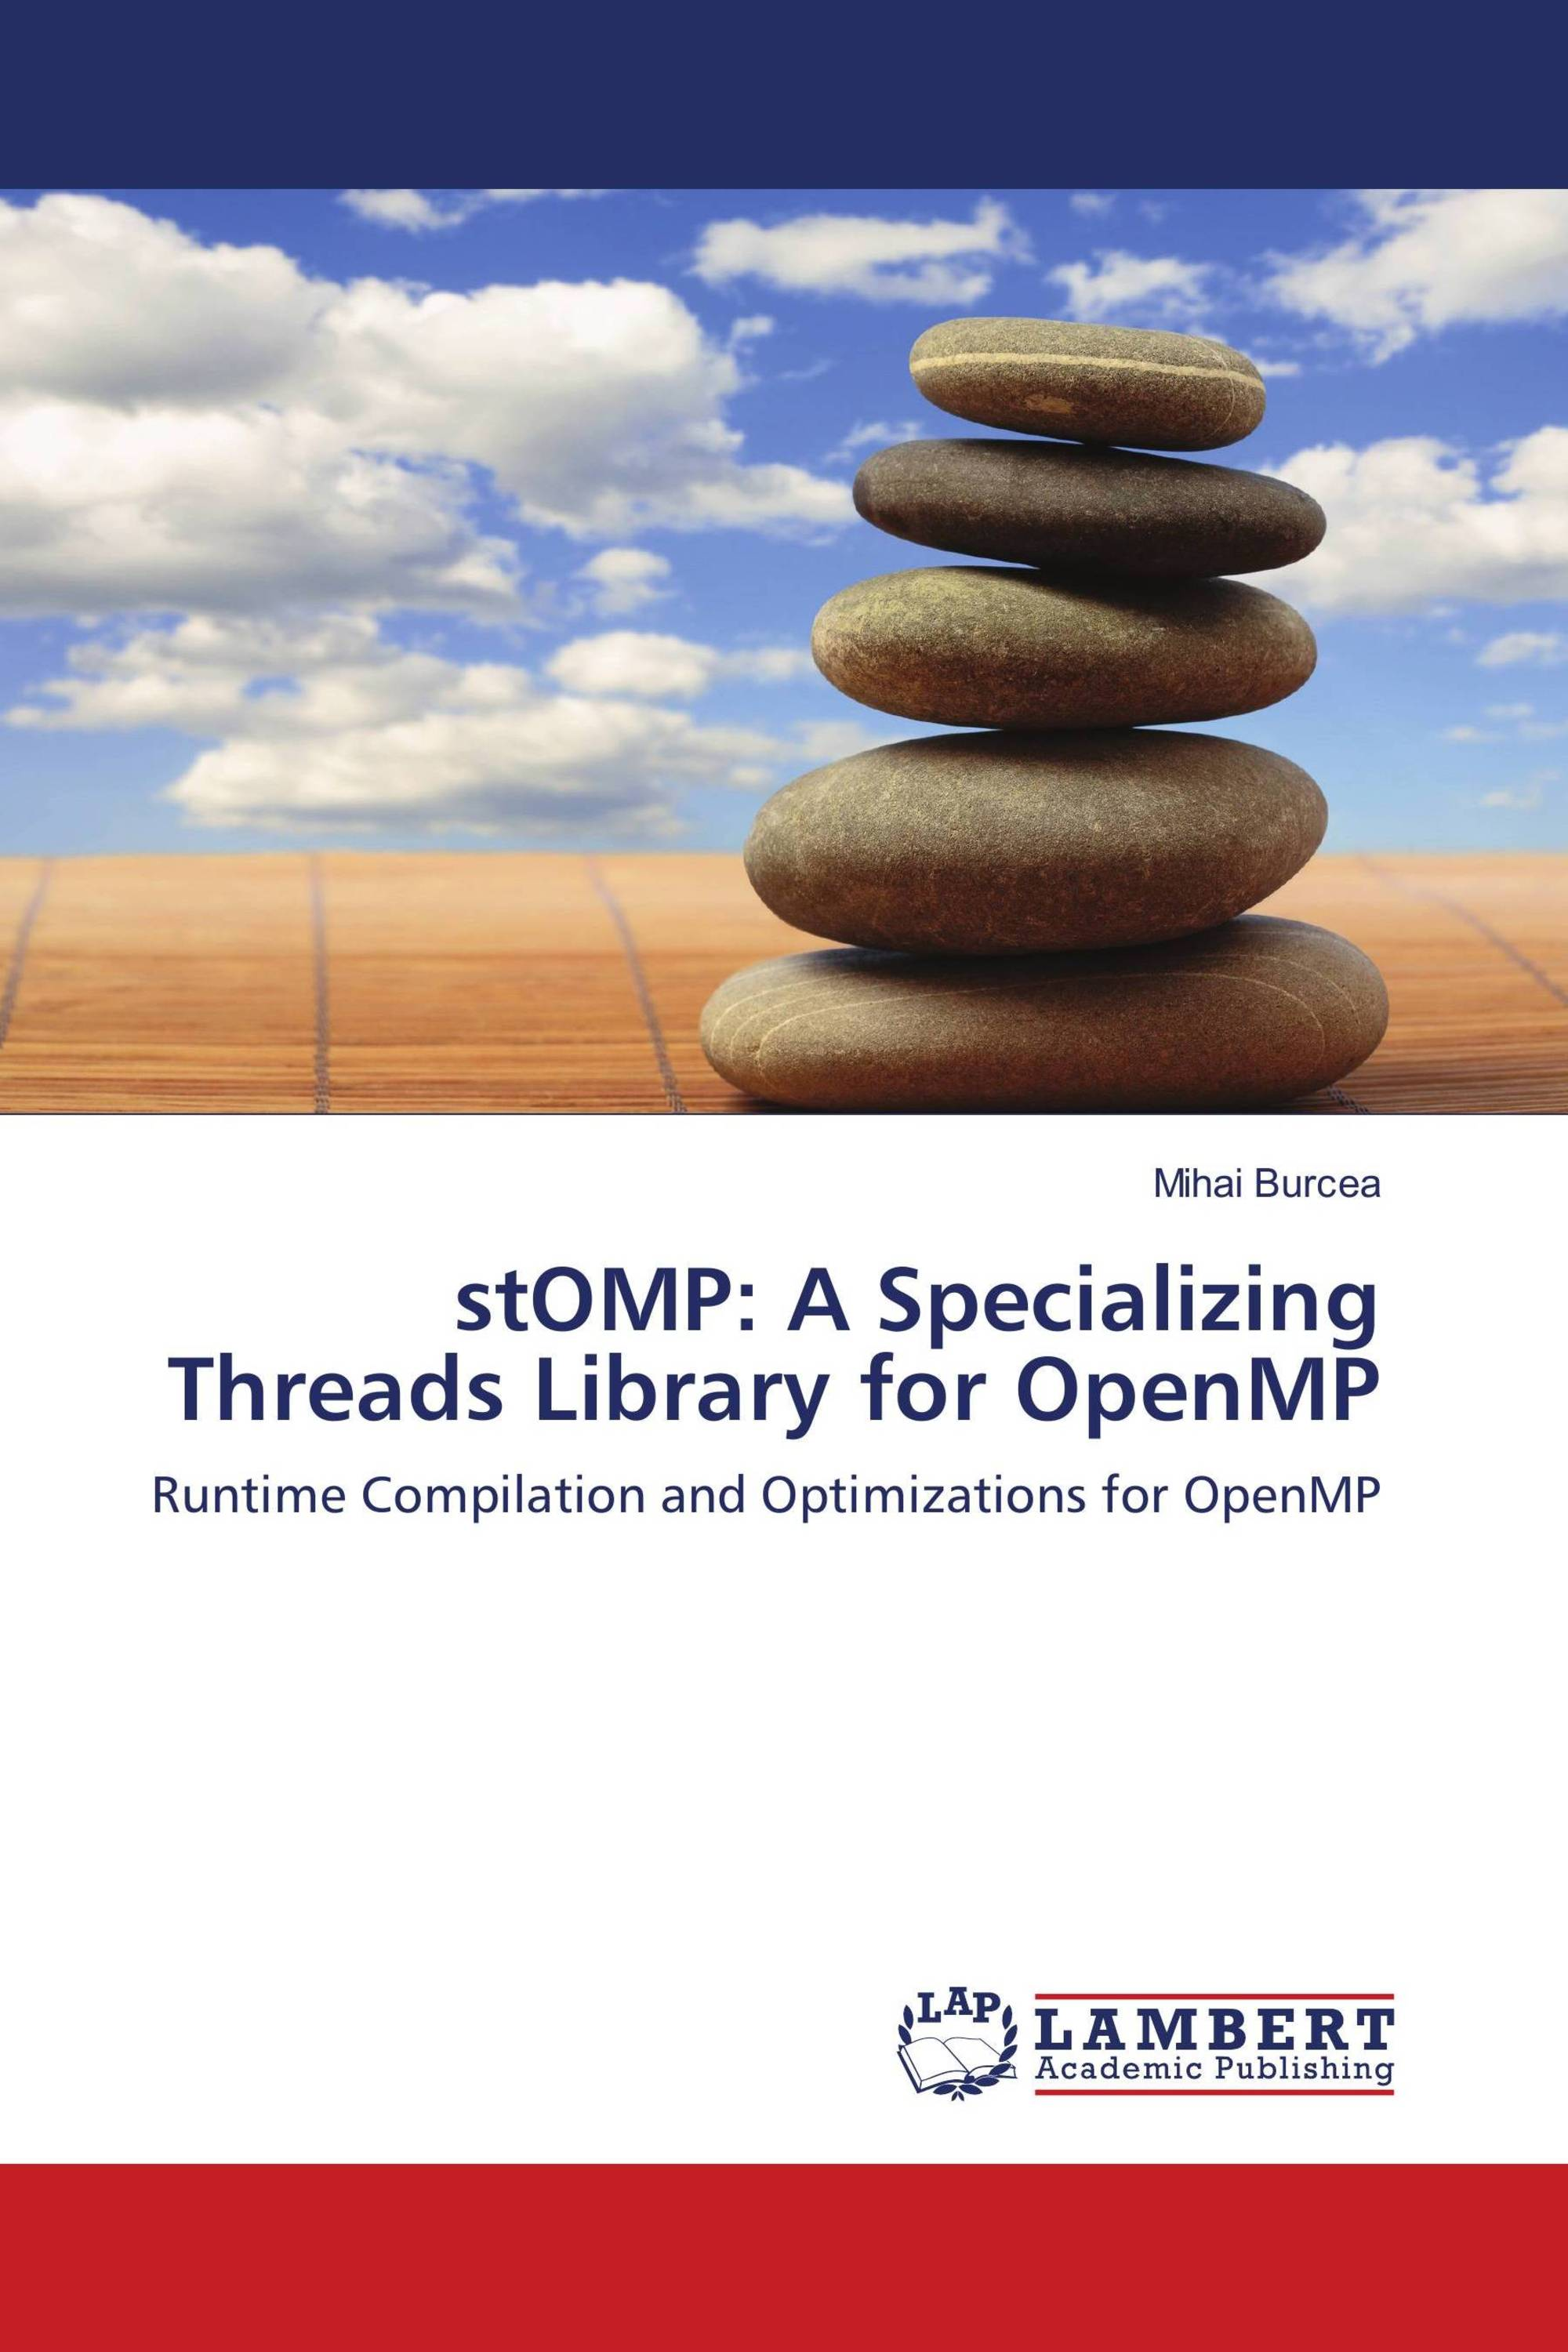 stOMP: A Specializing Threads Library for OpenMP